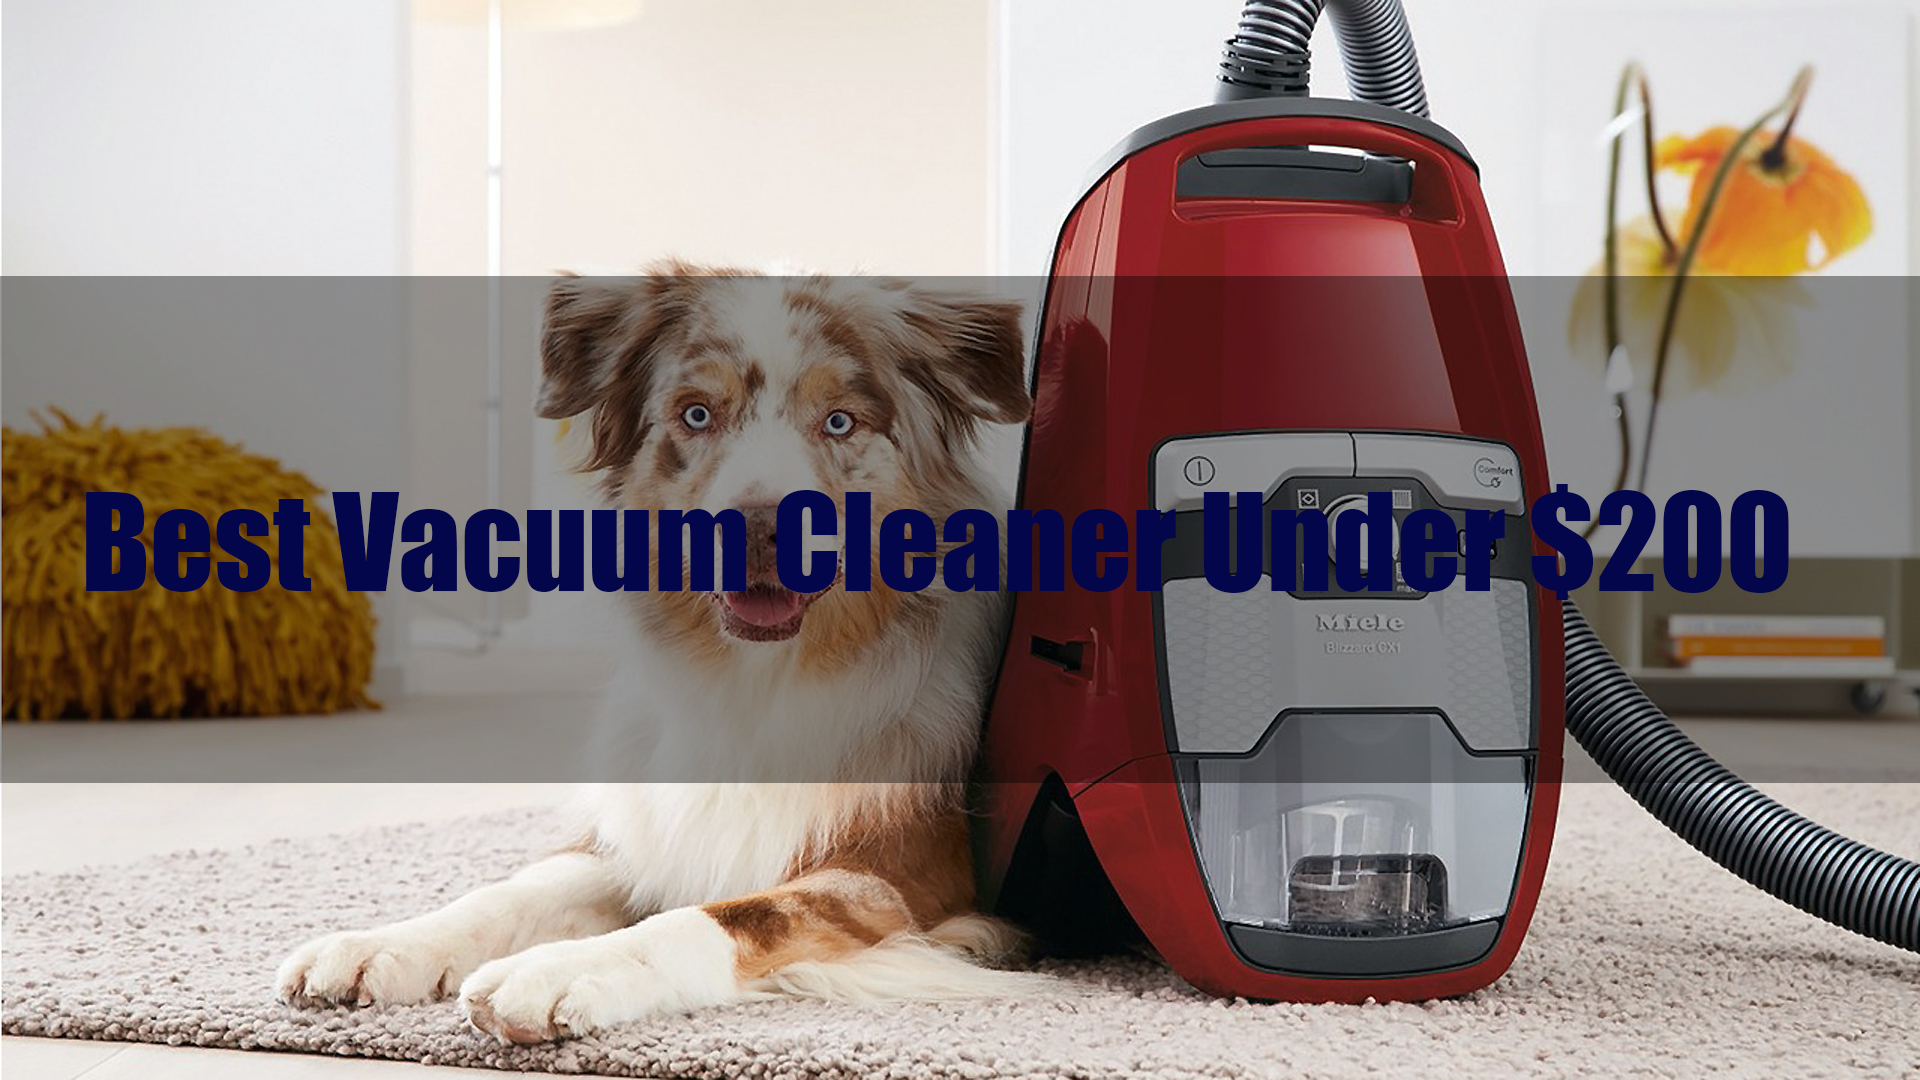 Best Vacuum Cleaner Under 200 2019 Reviews And Guide